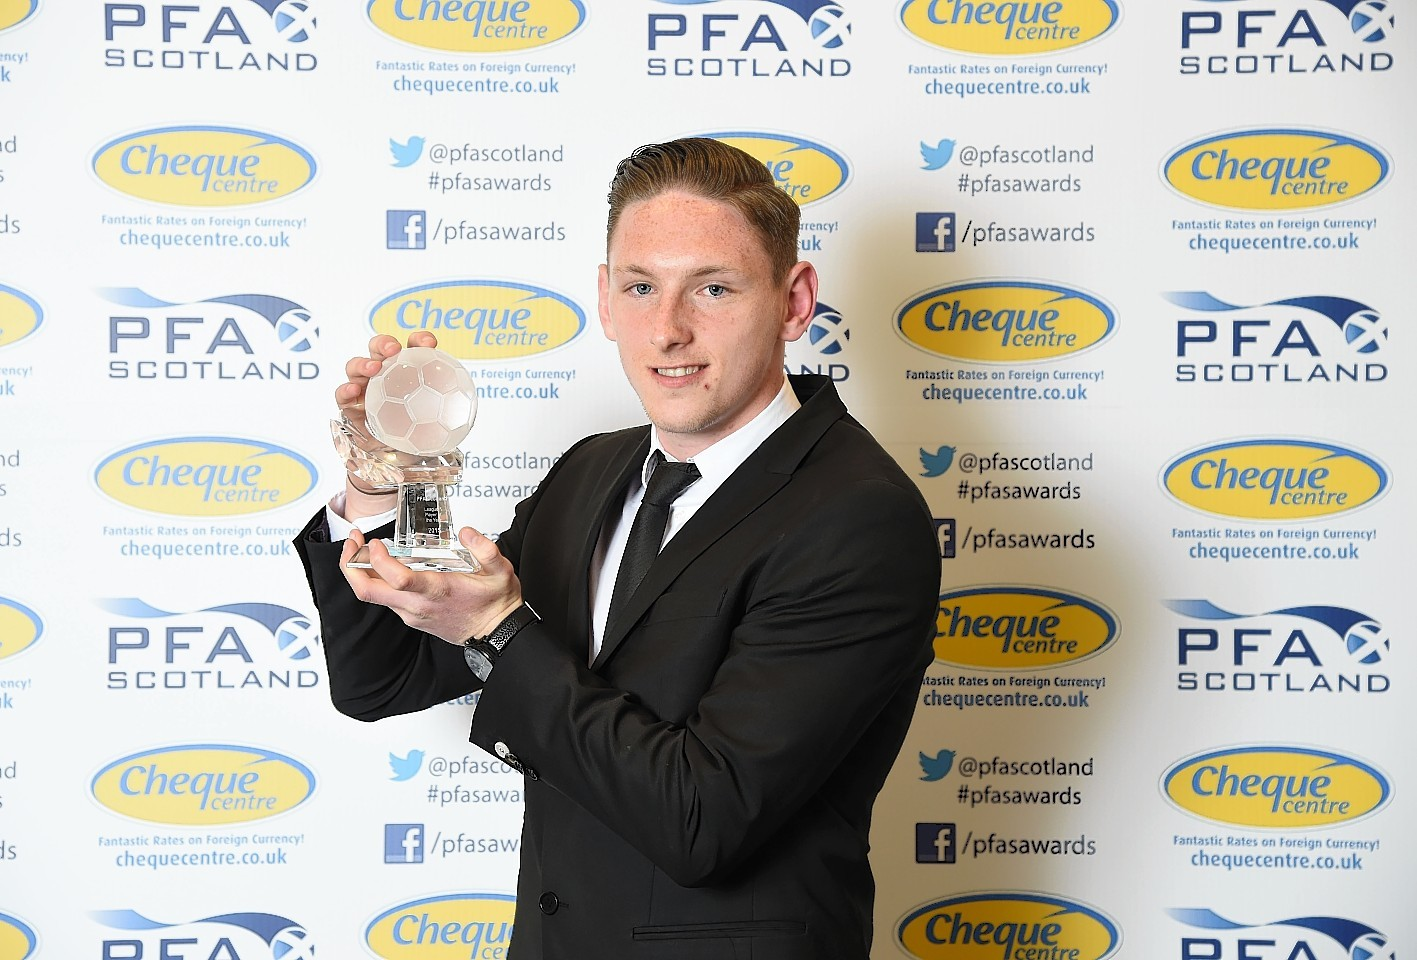 McManus was named Scottish League One player of the year last season